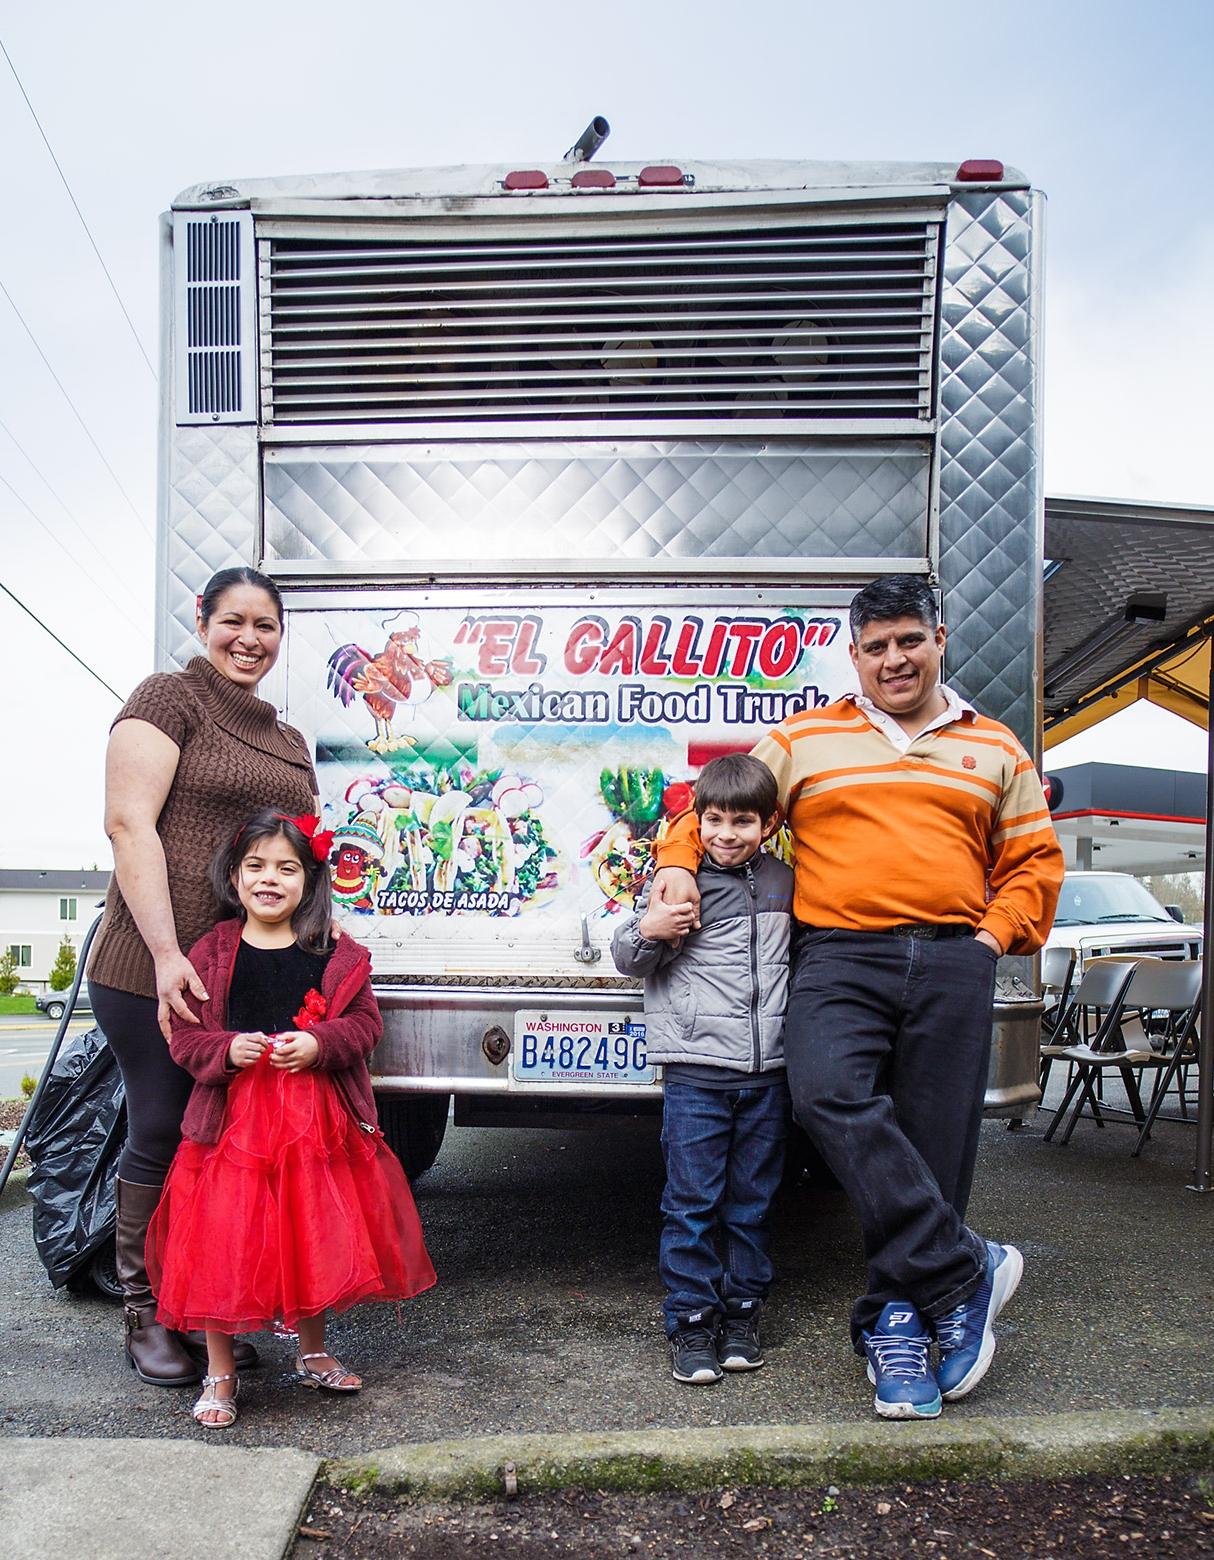 El Gallito Mexican Food Truck launched in Renton in summer 2015.     If you haven't visited Elizabeth Romero's food truck yet, you really must. CIE worked with  Mercy Corps Northwest  to support  El Gallito Mexican Food Truck  with her business plan and financial projections, which resulted in a loan to fund her launch.    Elizabeth is a first generation immigrant who has had a dream of owning her own business for years. For the past three years, she has been using her own saved money to slowly accumulate the equipment and supplies she would need to open her own food truck. She came to MercyCorps Northwest to borrow the last bit of capital necessary to pay for permits, licenses and starting inventory. The business is doing well and is busy! If you're in a rush, be sure to call or text your order ahead.    Elizabeth hopes to be able to hire additional employees soon, and has plans to add new products. Eventually, the family plans to pass the business along to their two (currently school-aged) children, and then open an additional food truck—or even a restaurant!     Check it out on Facebook  Or in person at:  10545 SE Carr Rd   Renton, Washington  (425) 647-0660 • Open Monday – Saturday